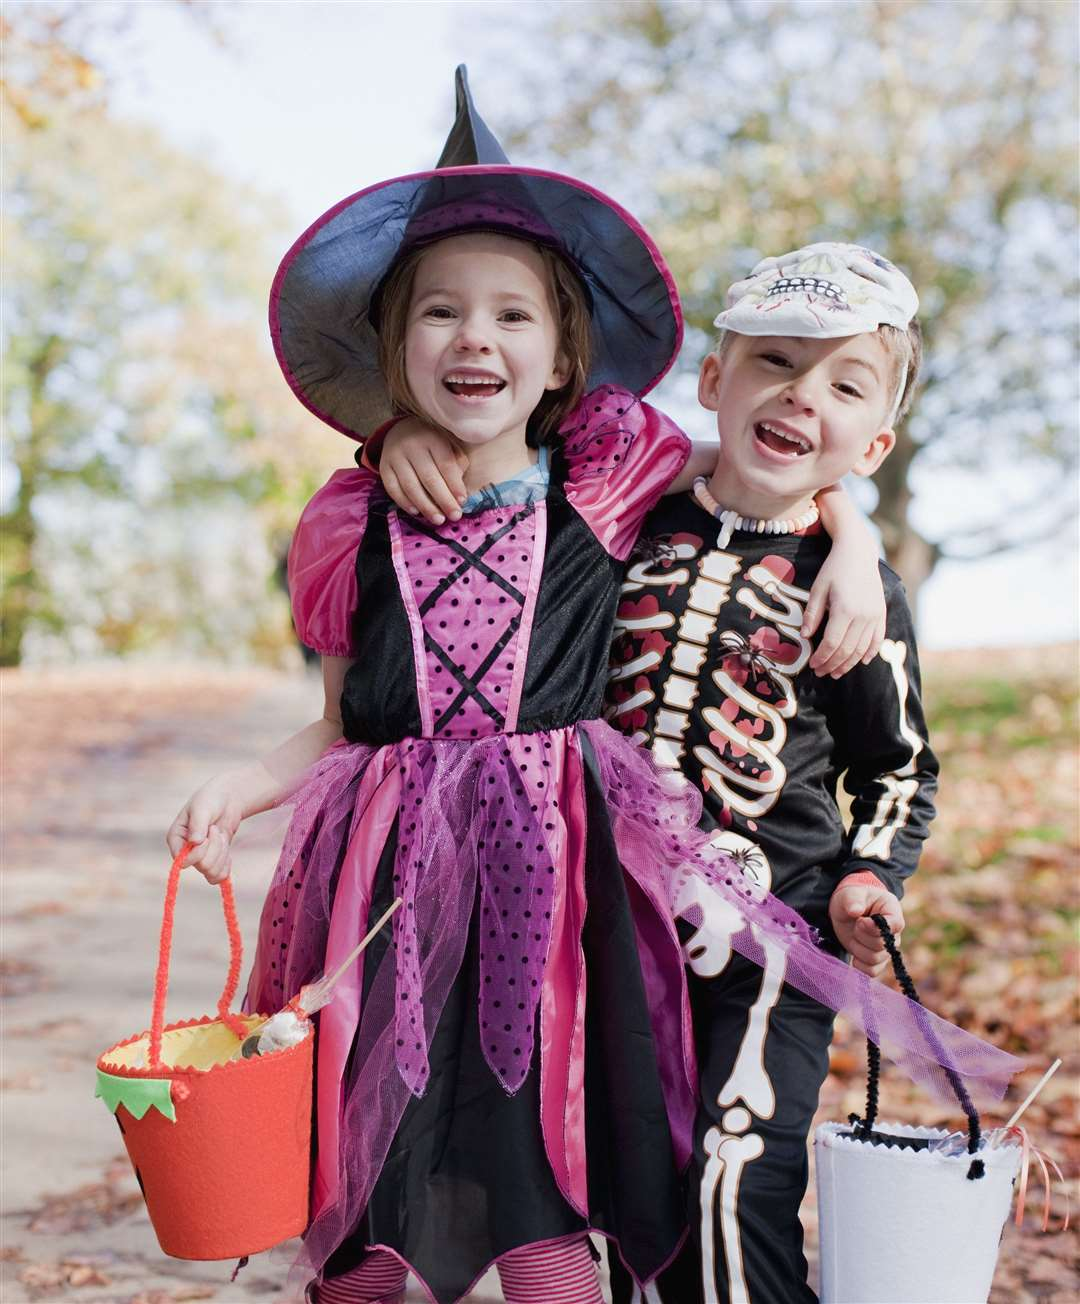 Halloween fancy dress could win prizes